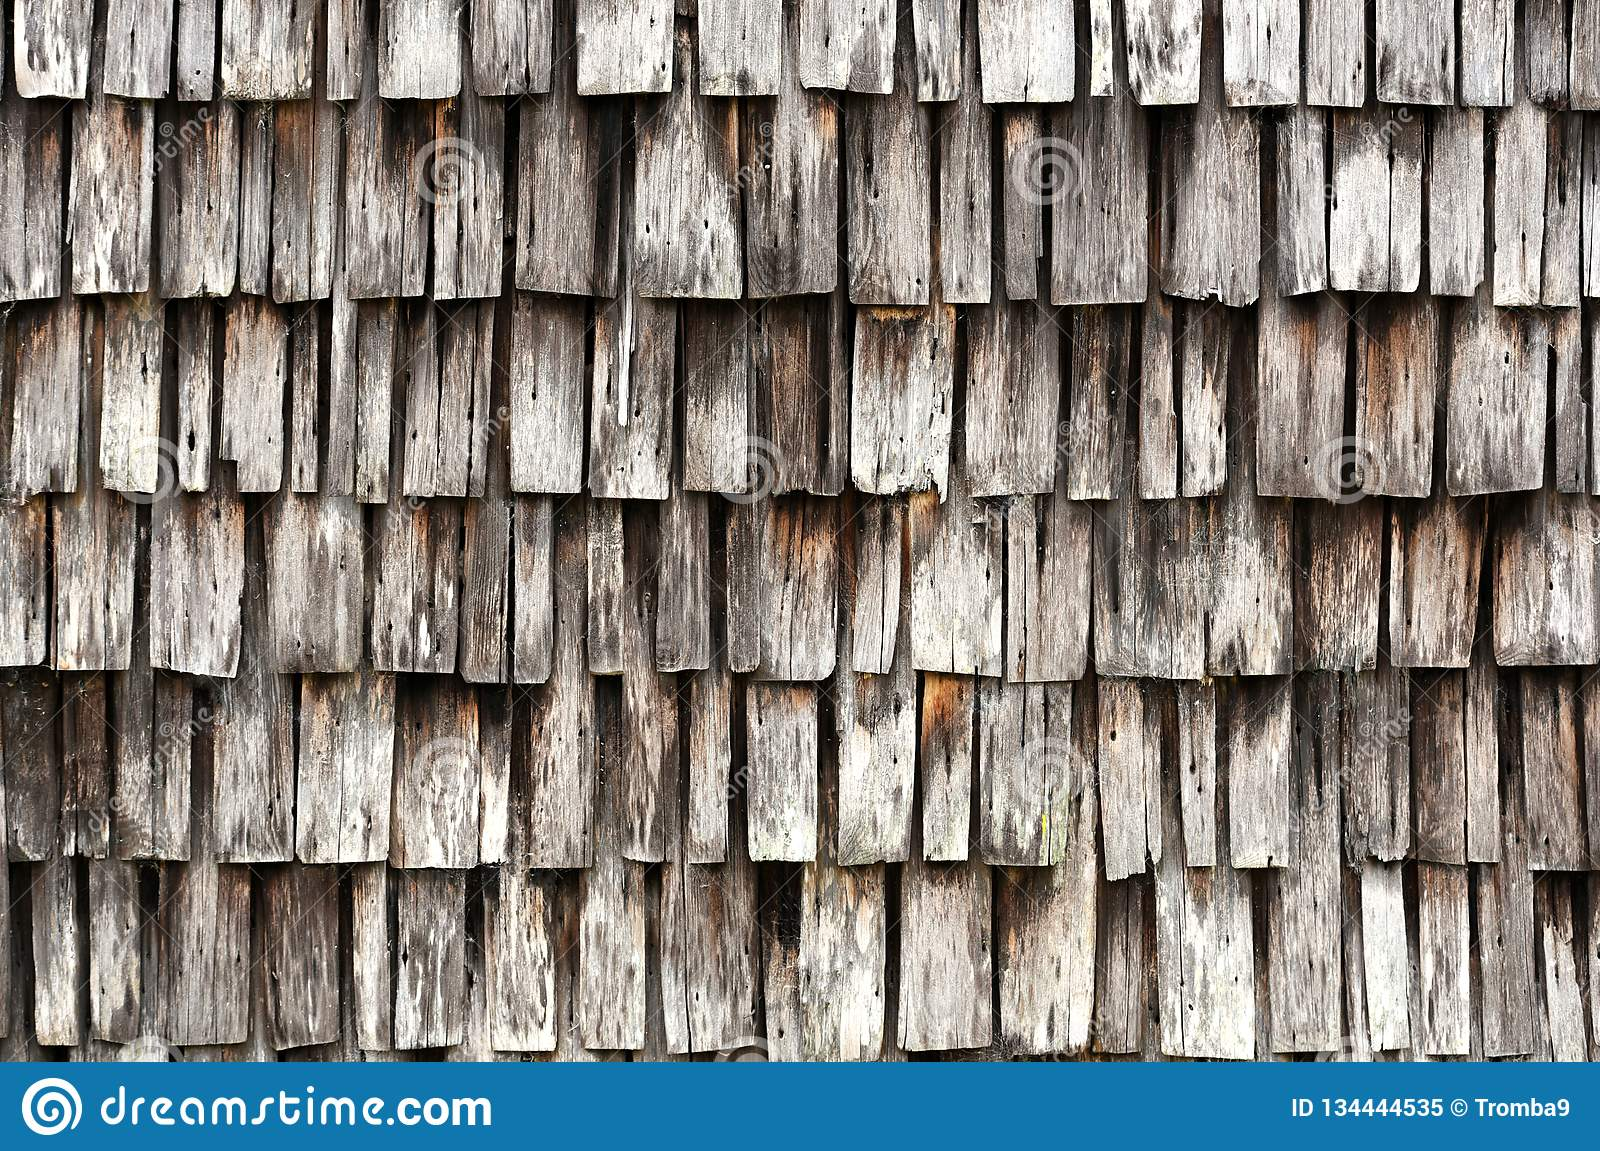 Wooden Construction Of Private Houses On Uneven Surfaces